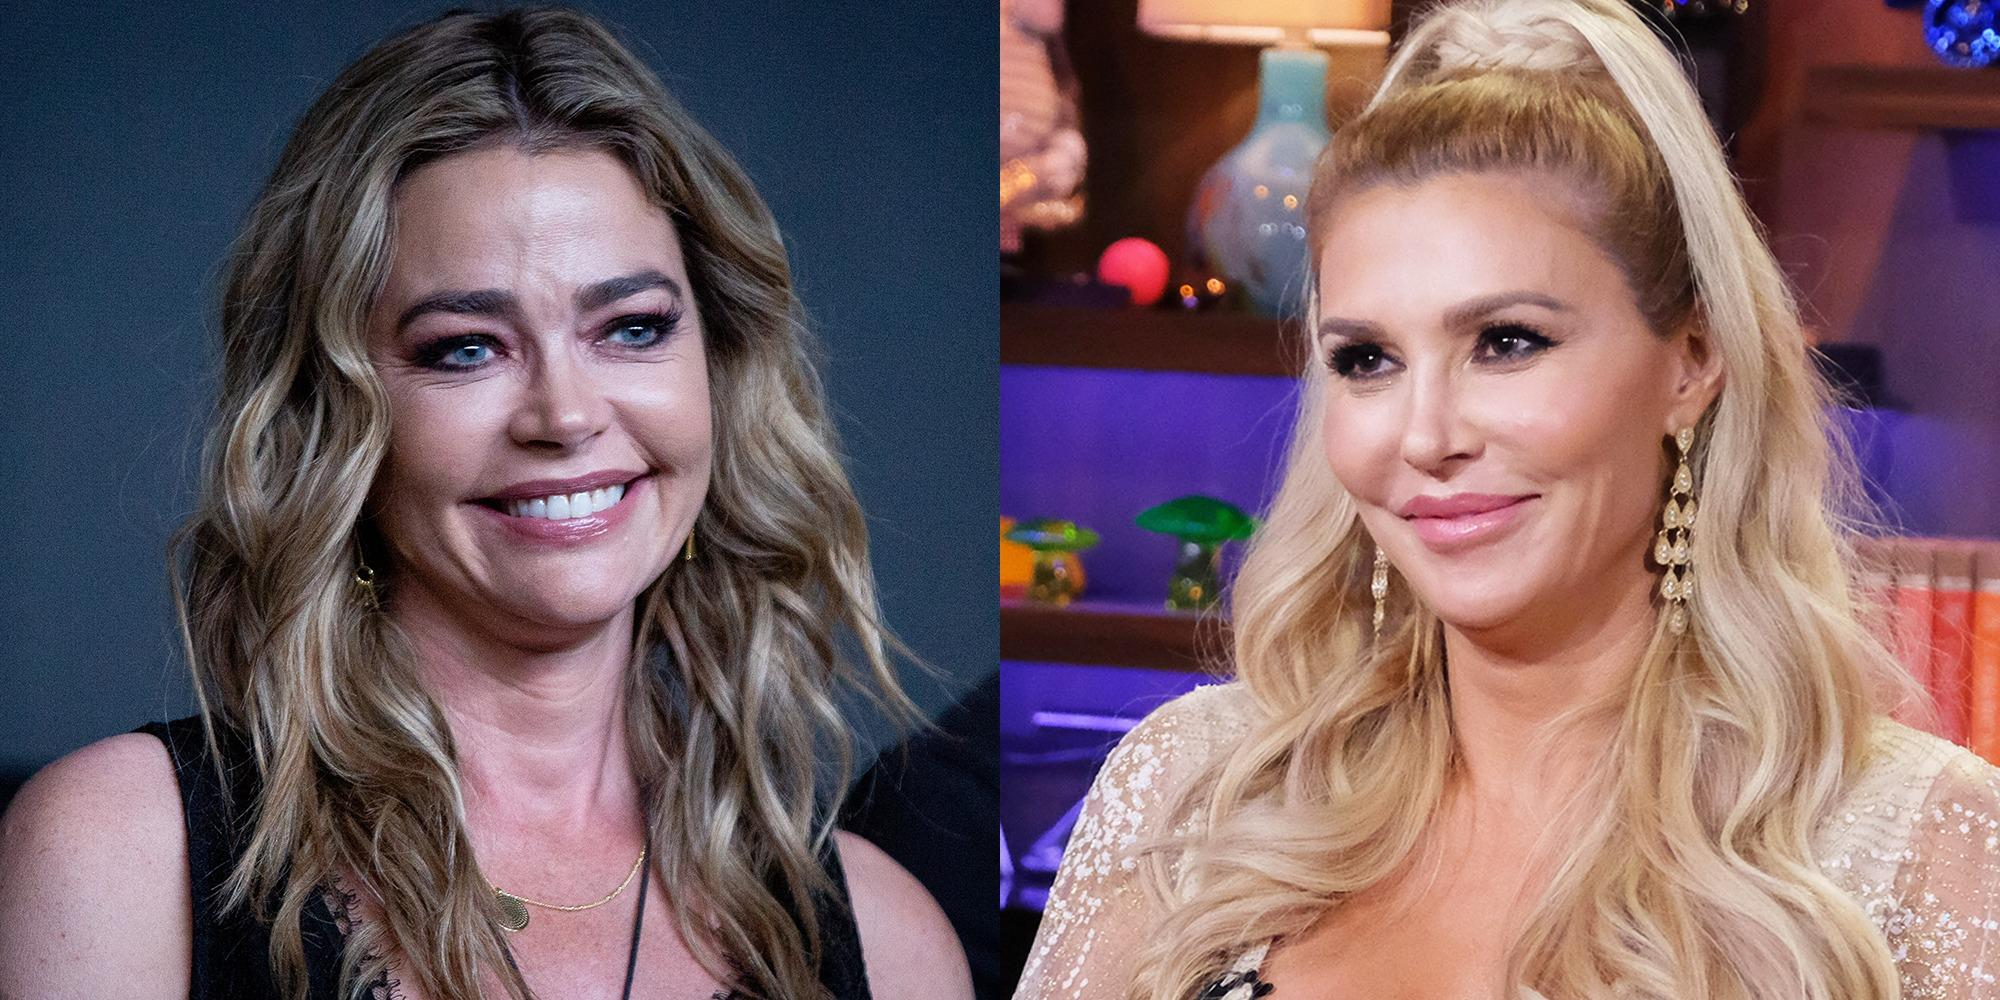 Brandi Glanville Posts Pic Of Her And Denise Richards Kissing Amid Affair Rumors